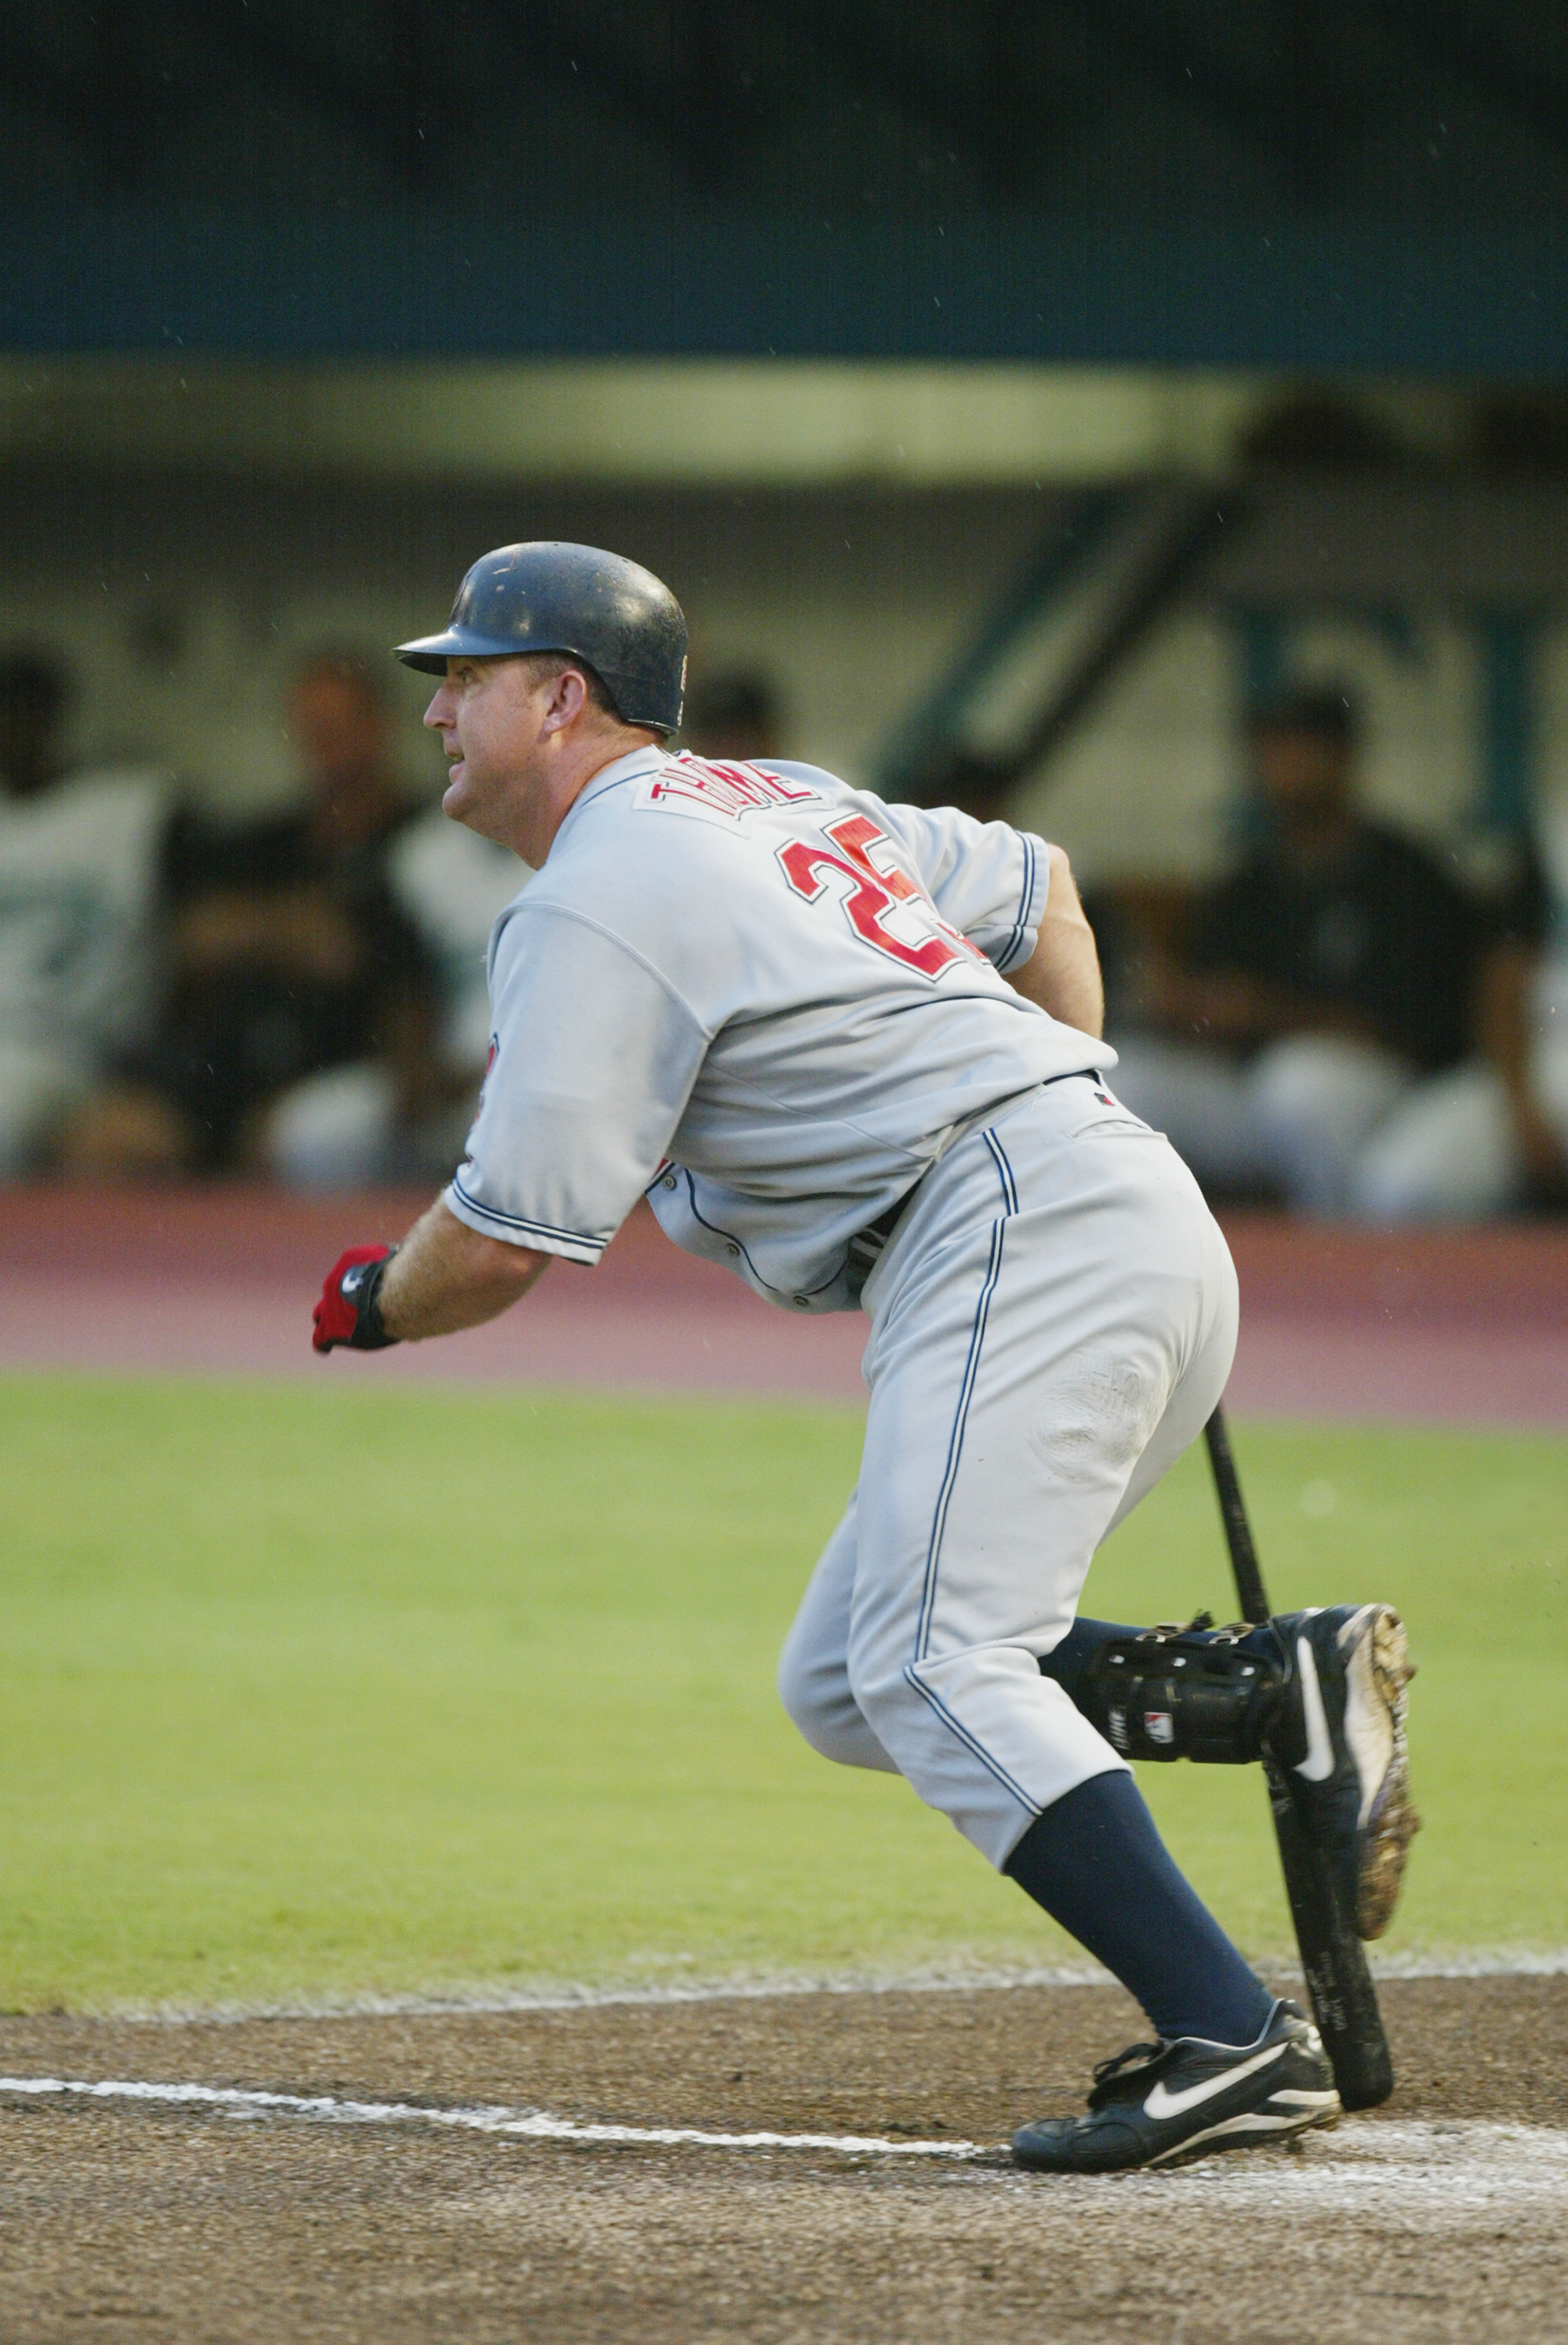 MIAMI - JUNE 20:  First baseman Jim Thome #25 of the Cleveland Indians watches the flight of the ball during the MLB game against the Florida Marlins on June 20, 2002 at Pro Player Stadium in Miami, Florida. The game was delayed in the 6th inning due to r